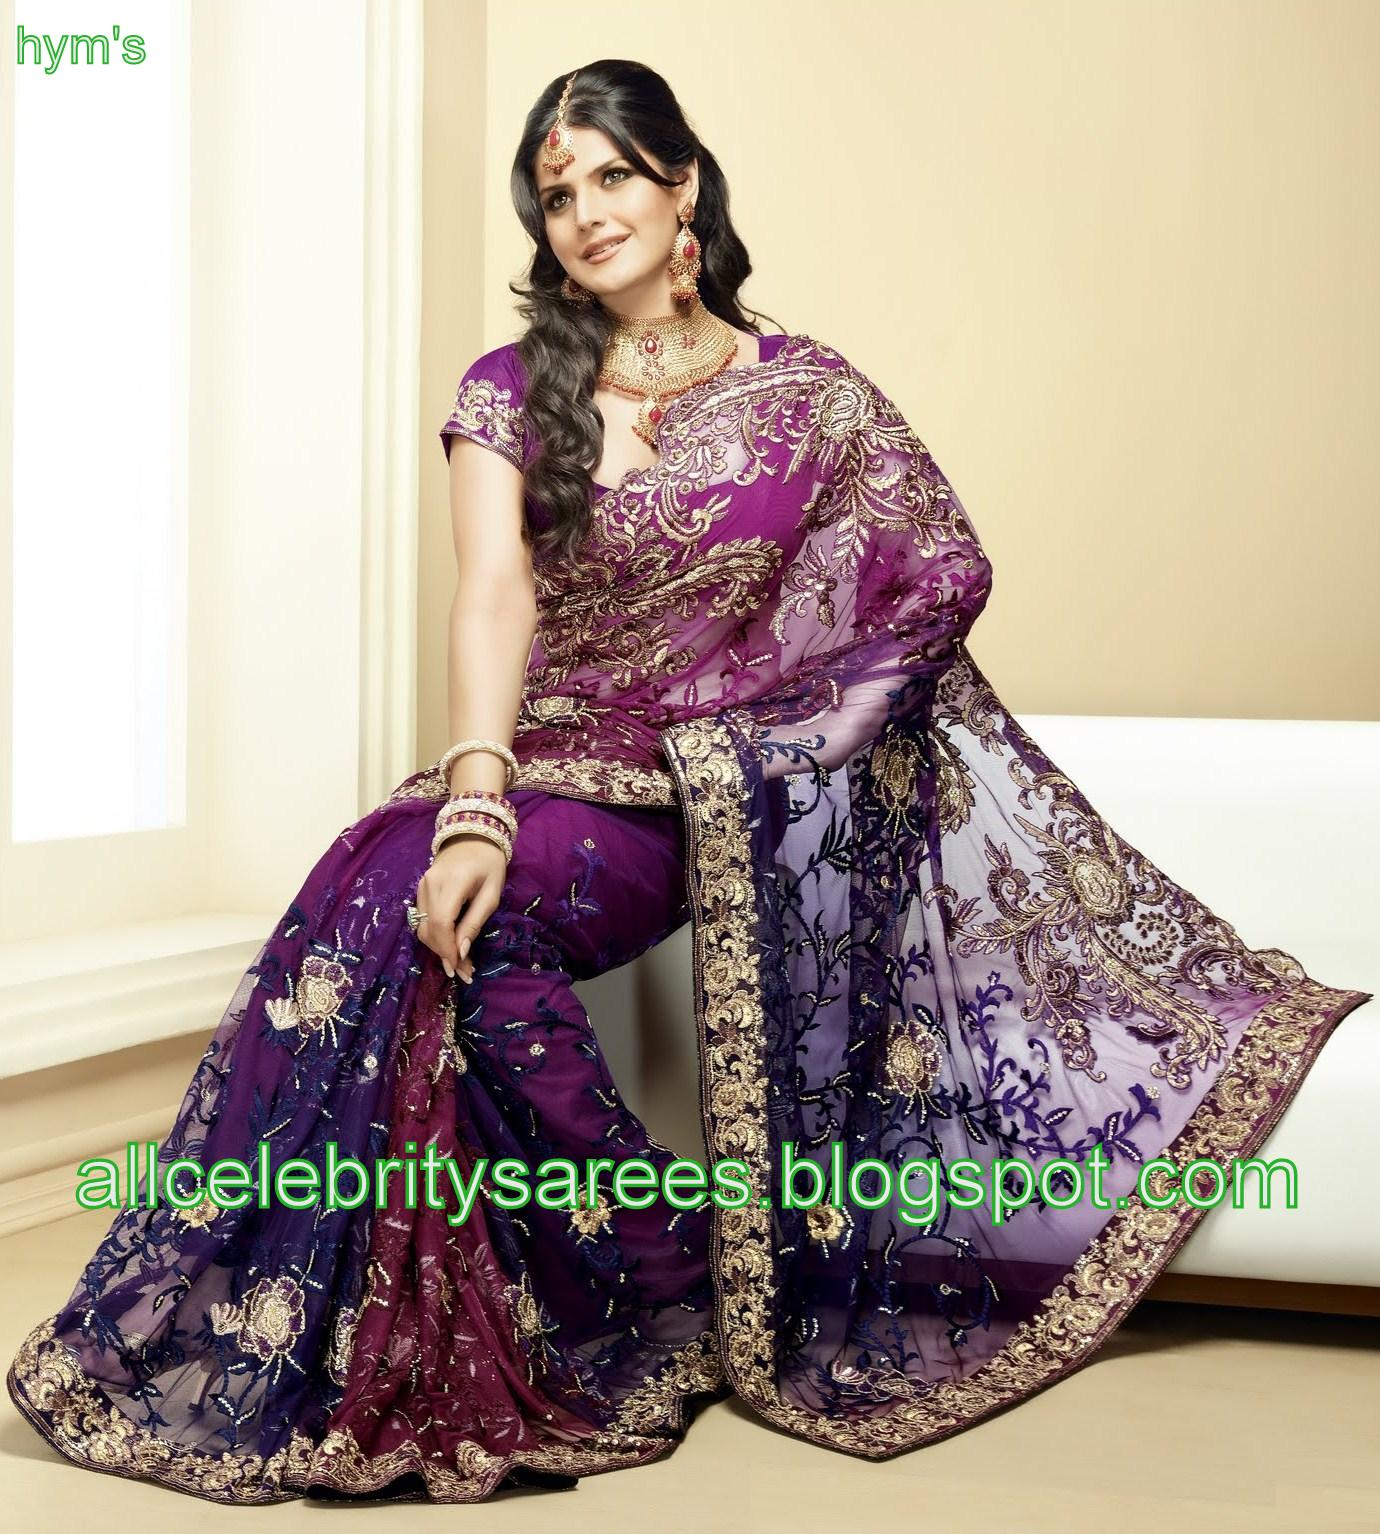 All Celebrities Sarees Designs: A Beautiful Net Saree with ...